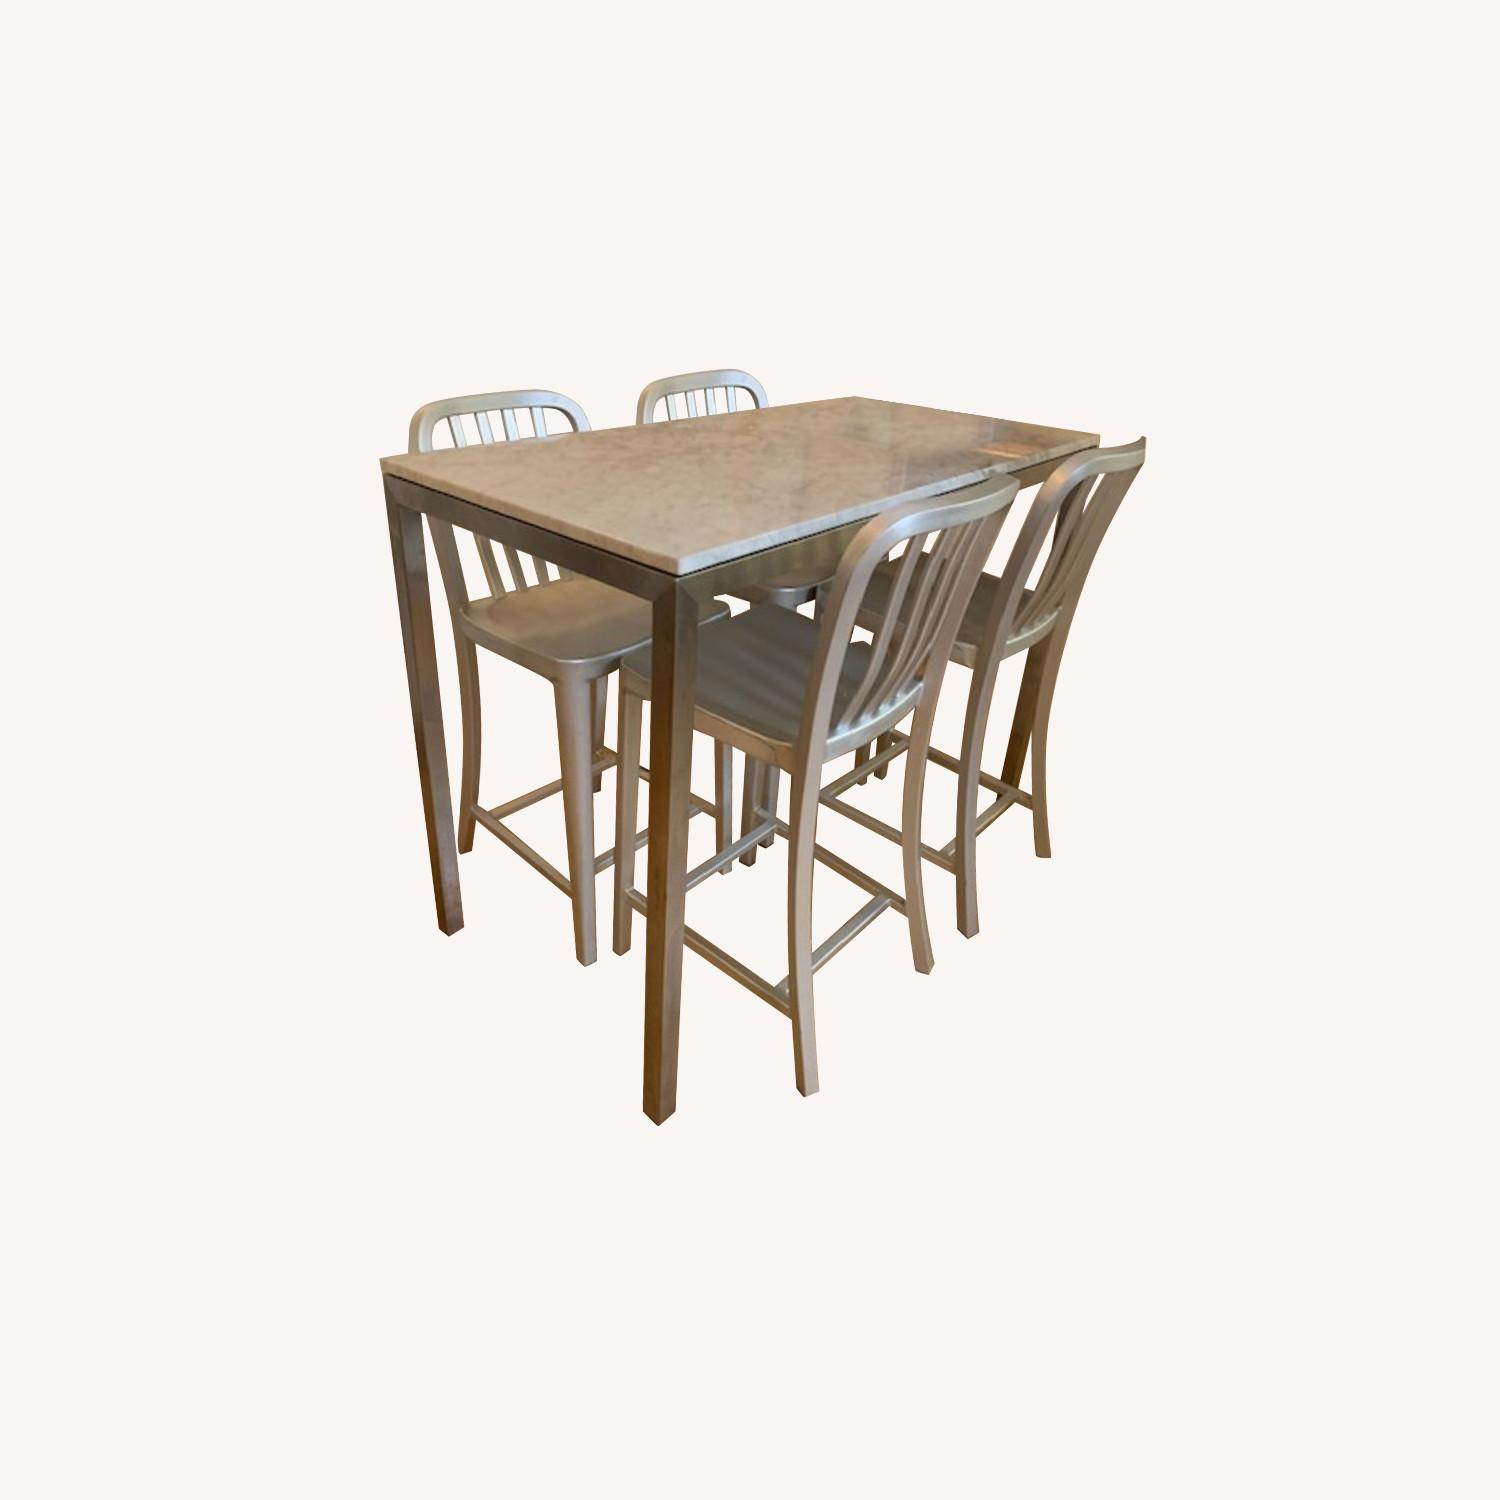 Room & Board Portica Counter Table w/ 4 Stools - image-0